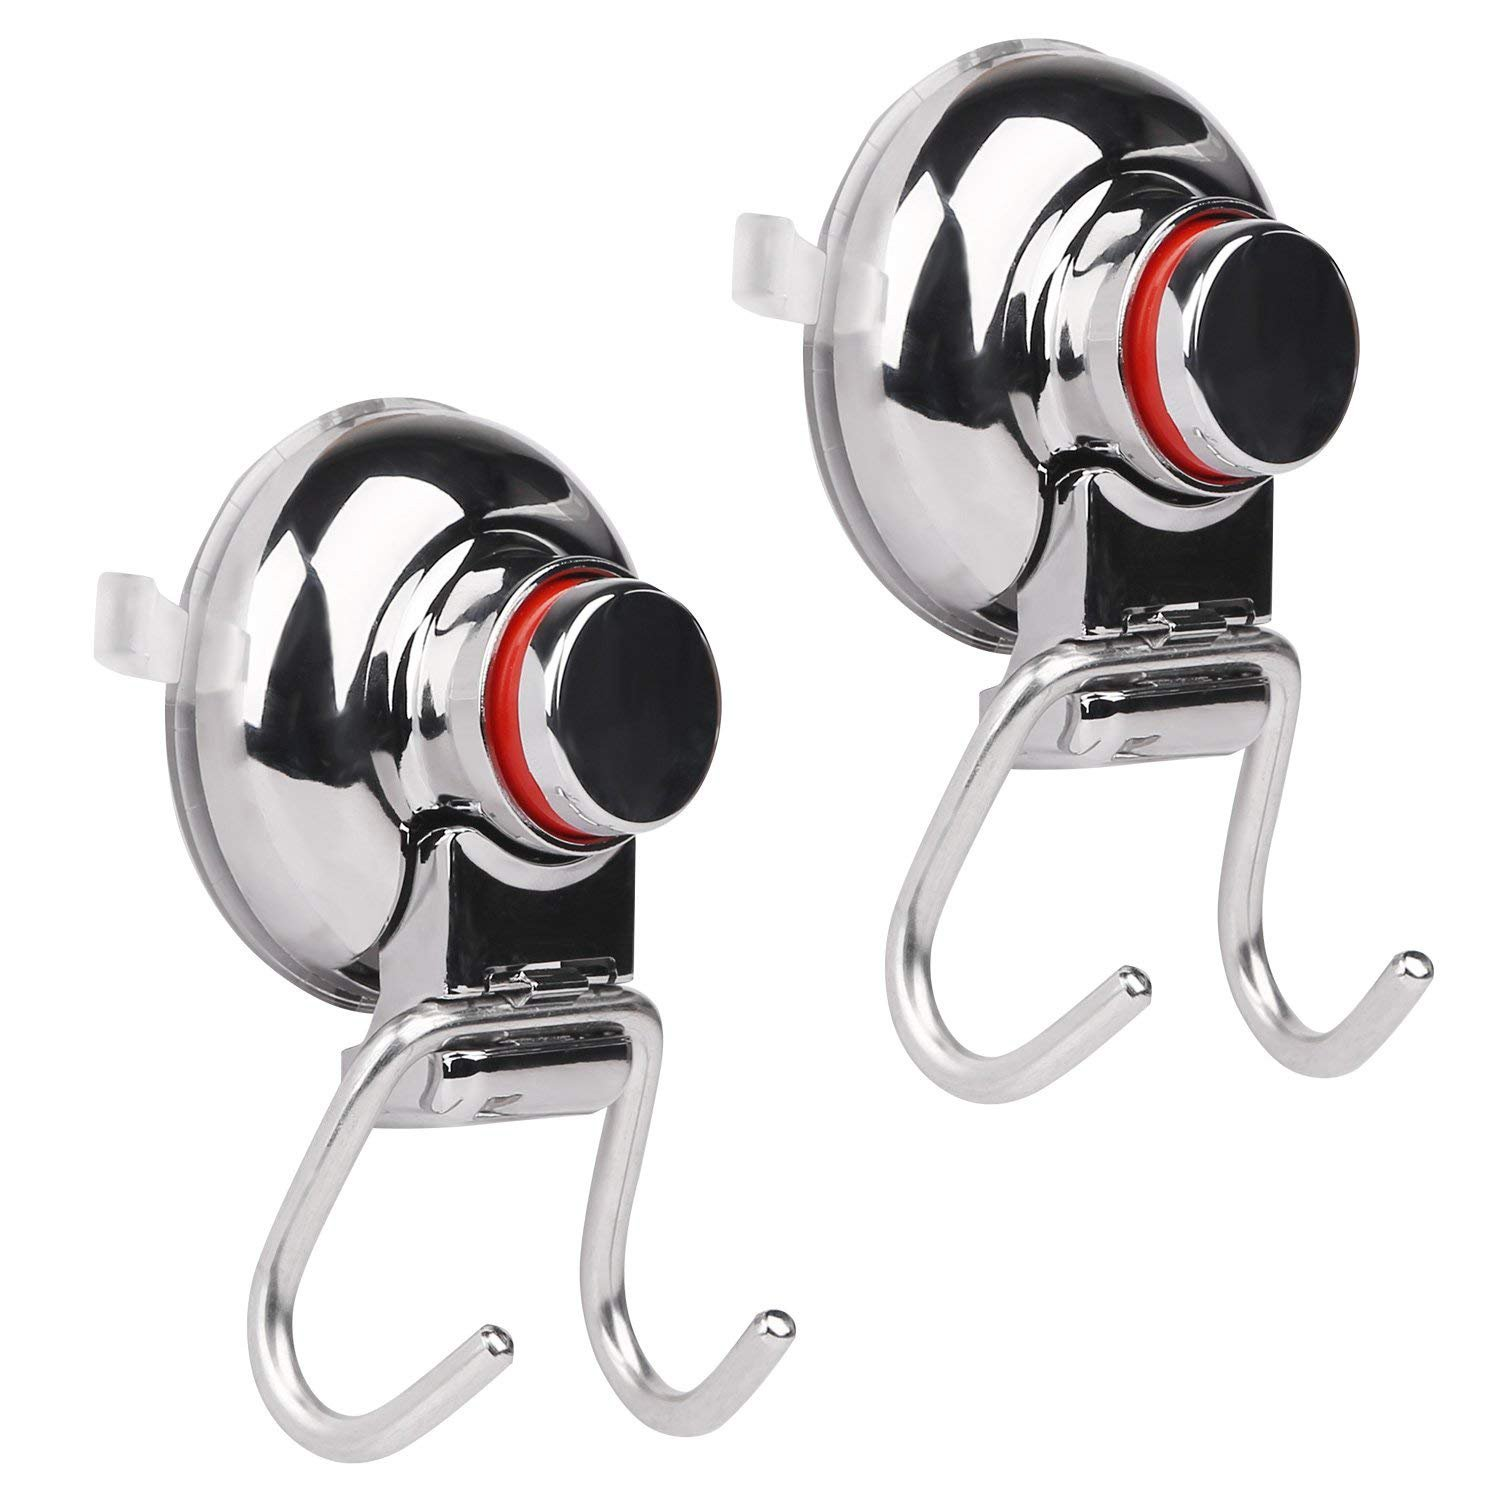 AUTO PDR Suction Cup Hooks, Powerful Water and Rust Proof Vacuum Hook Holder, Double Hook with Vacuum Suction Cup, Strong Stainless Steel Hooks for Bathroom Shower Kitchen,Towel Hanger Storage etc